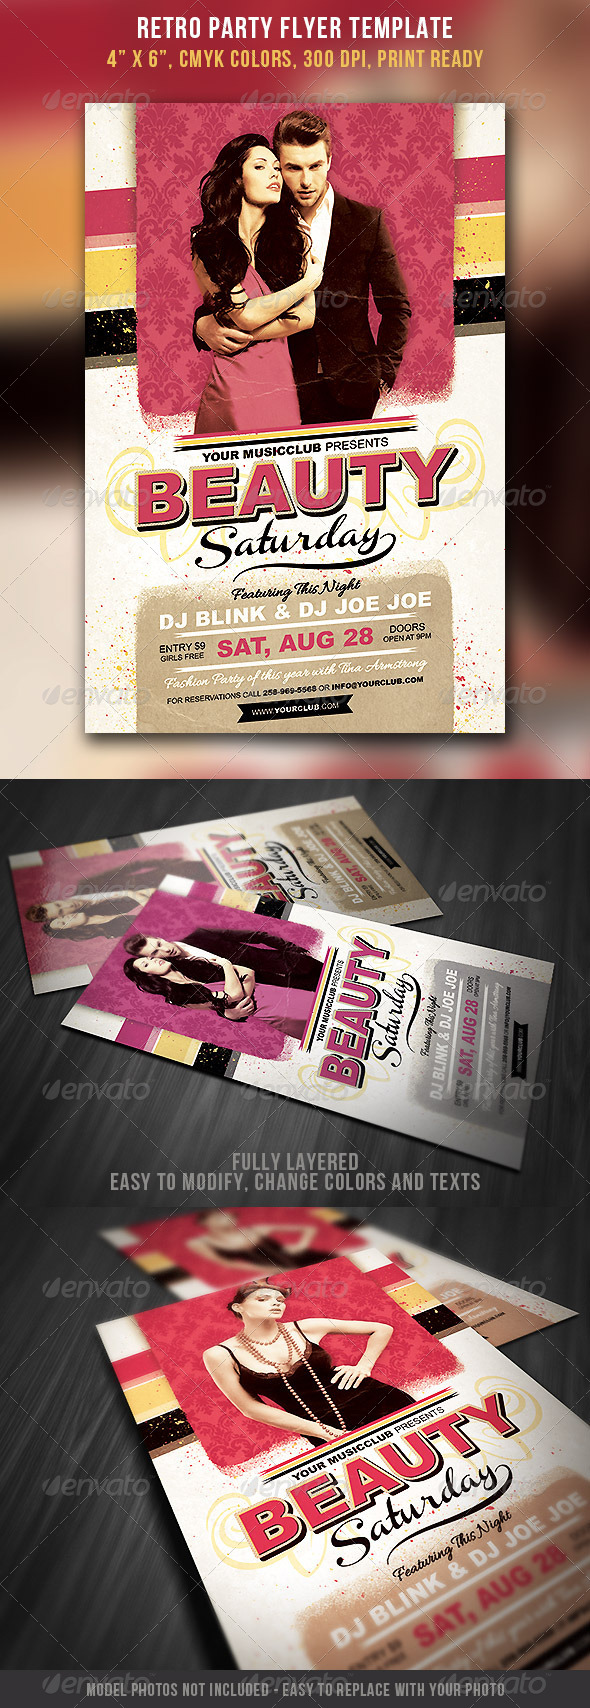 GraphicRiver Retro Party Flyer 5234052